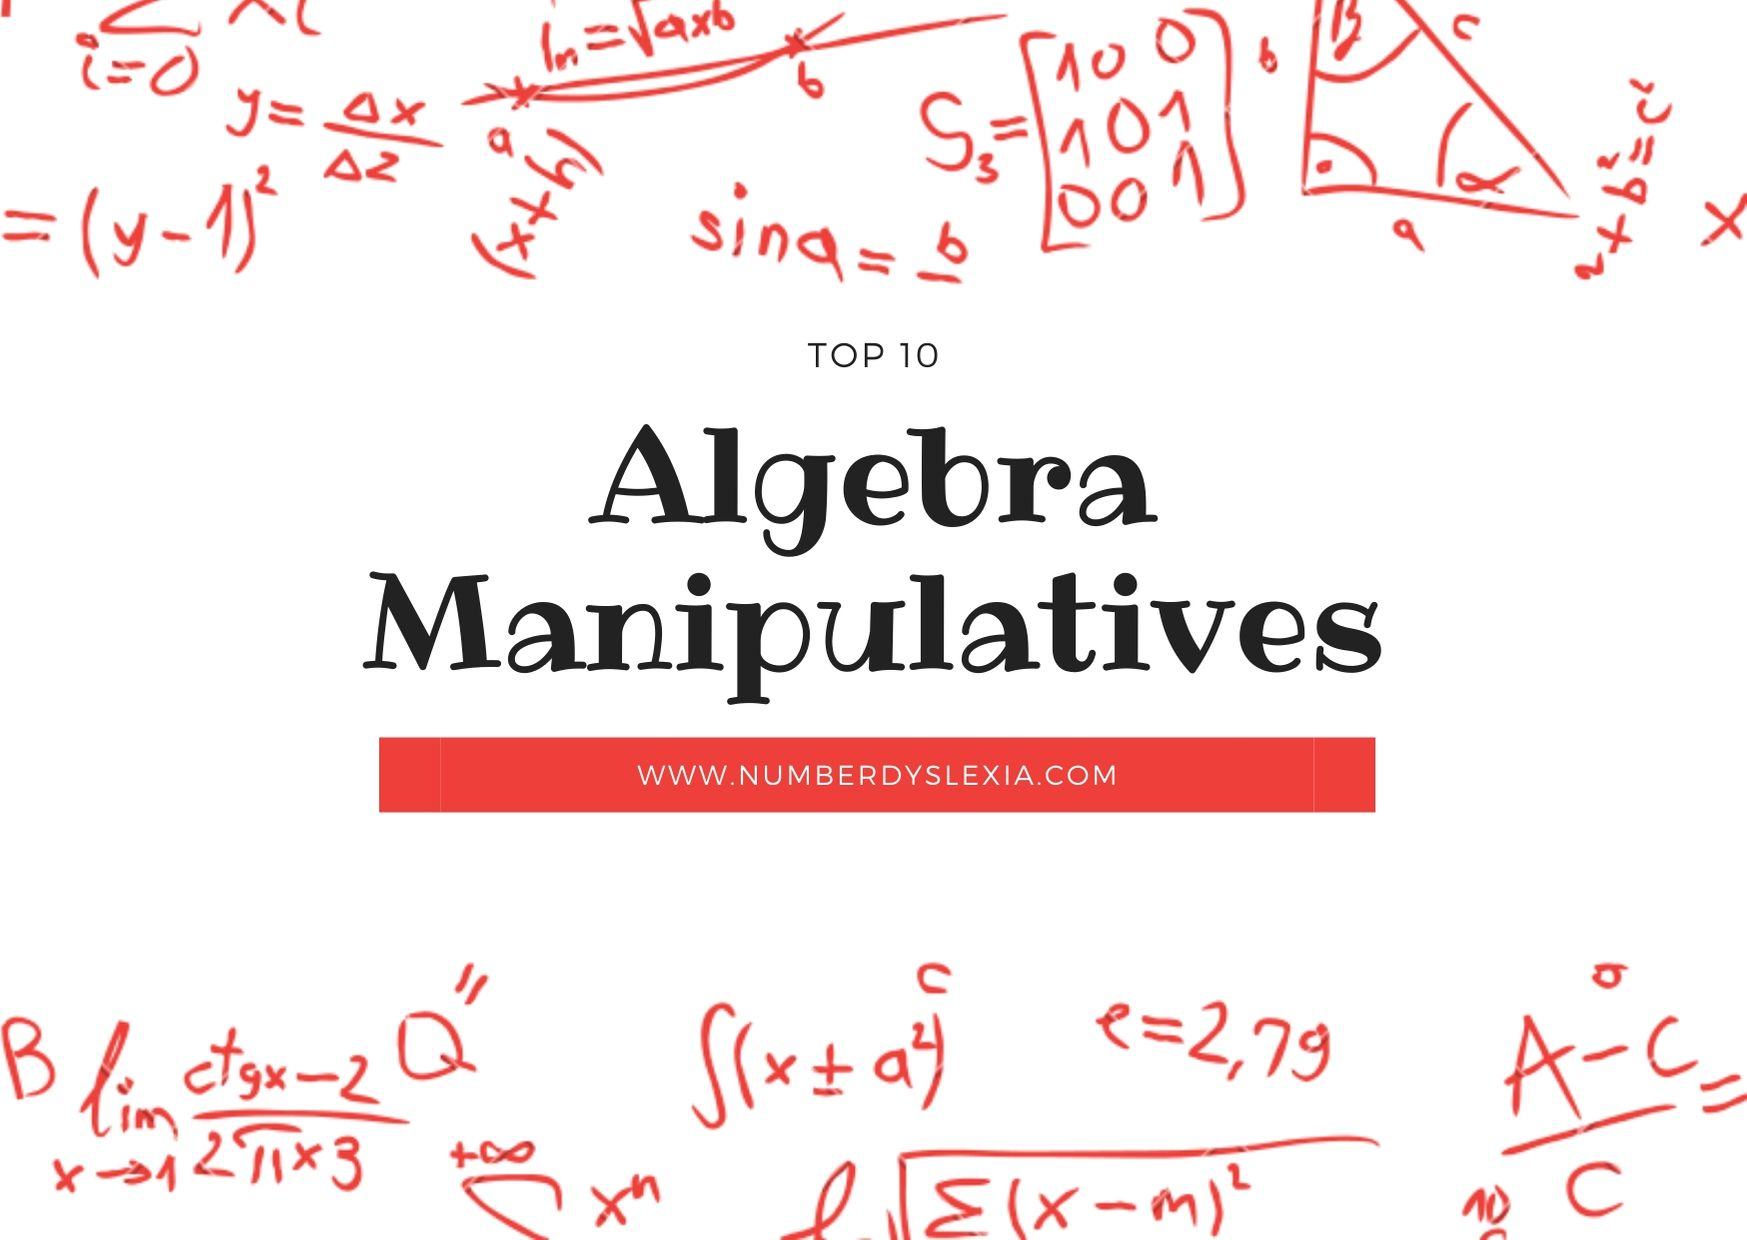 a list of top 10 manipulatives for algebra